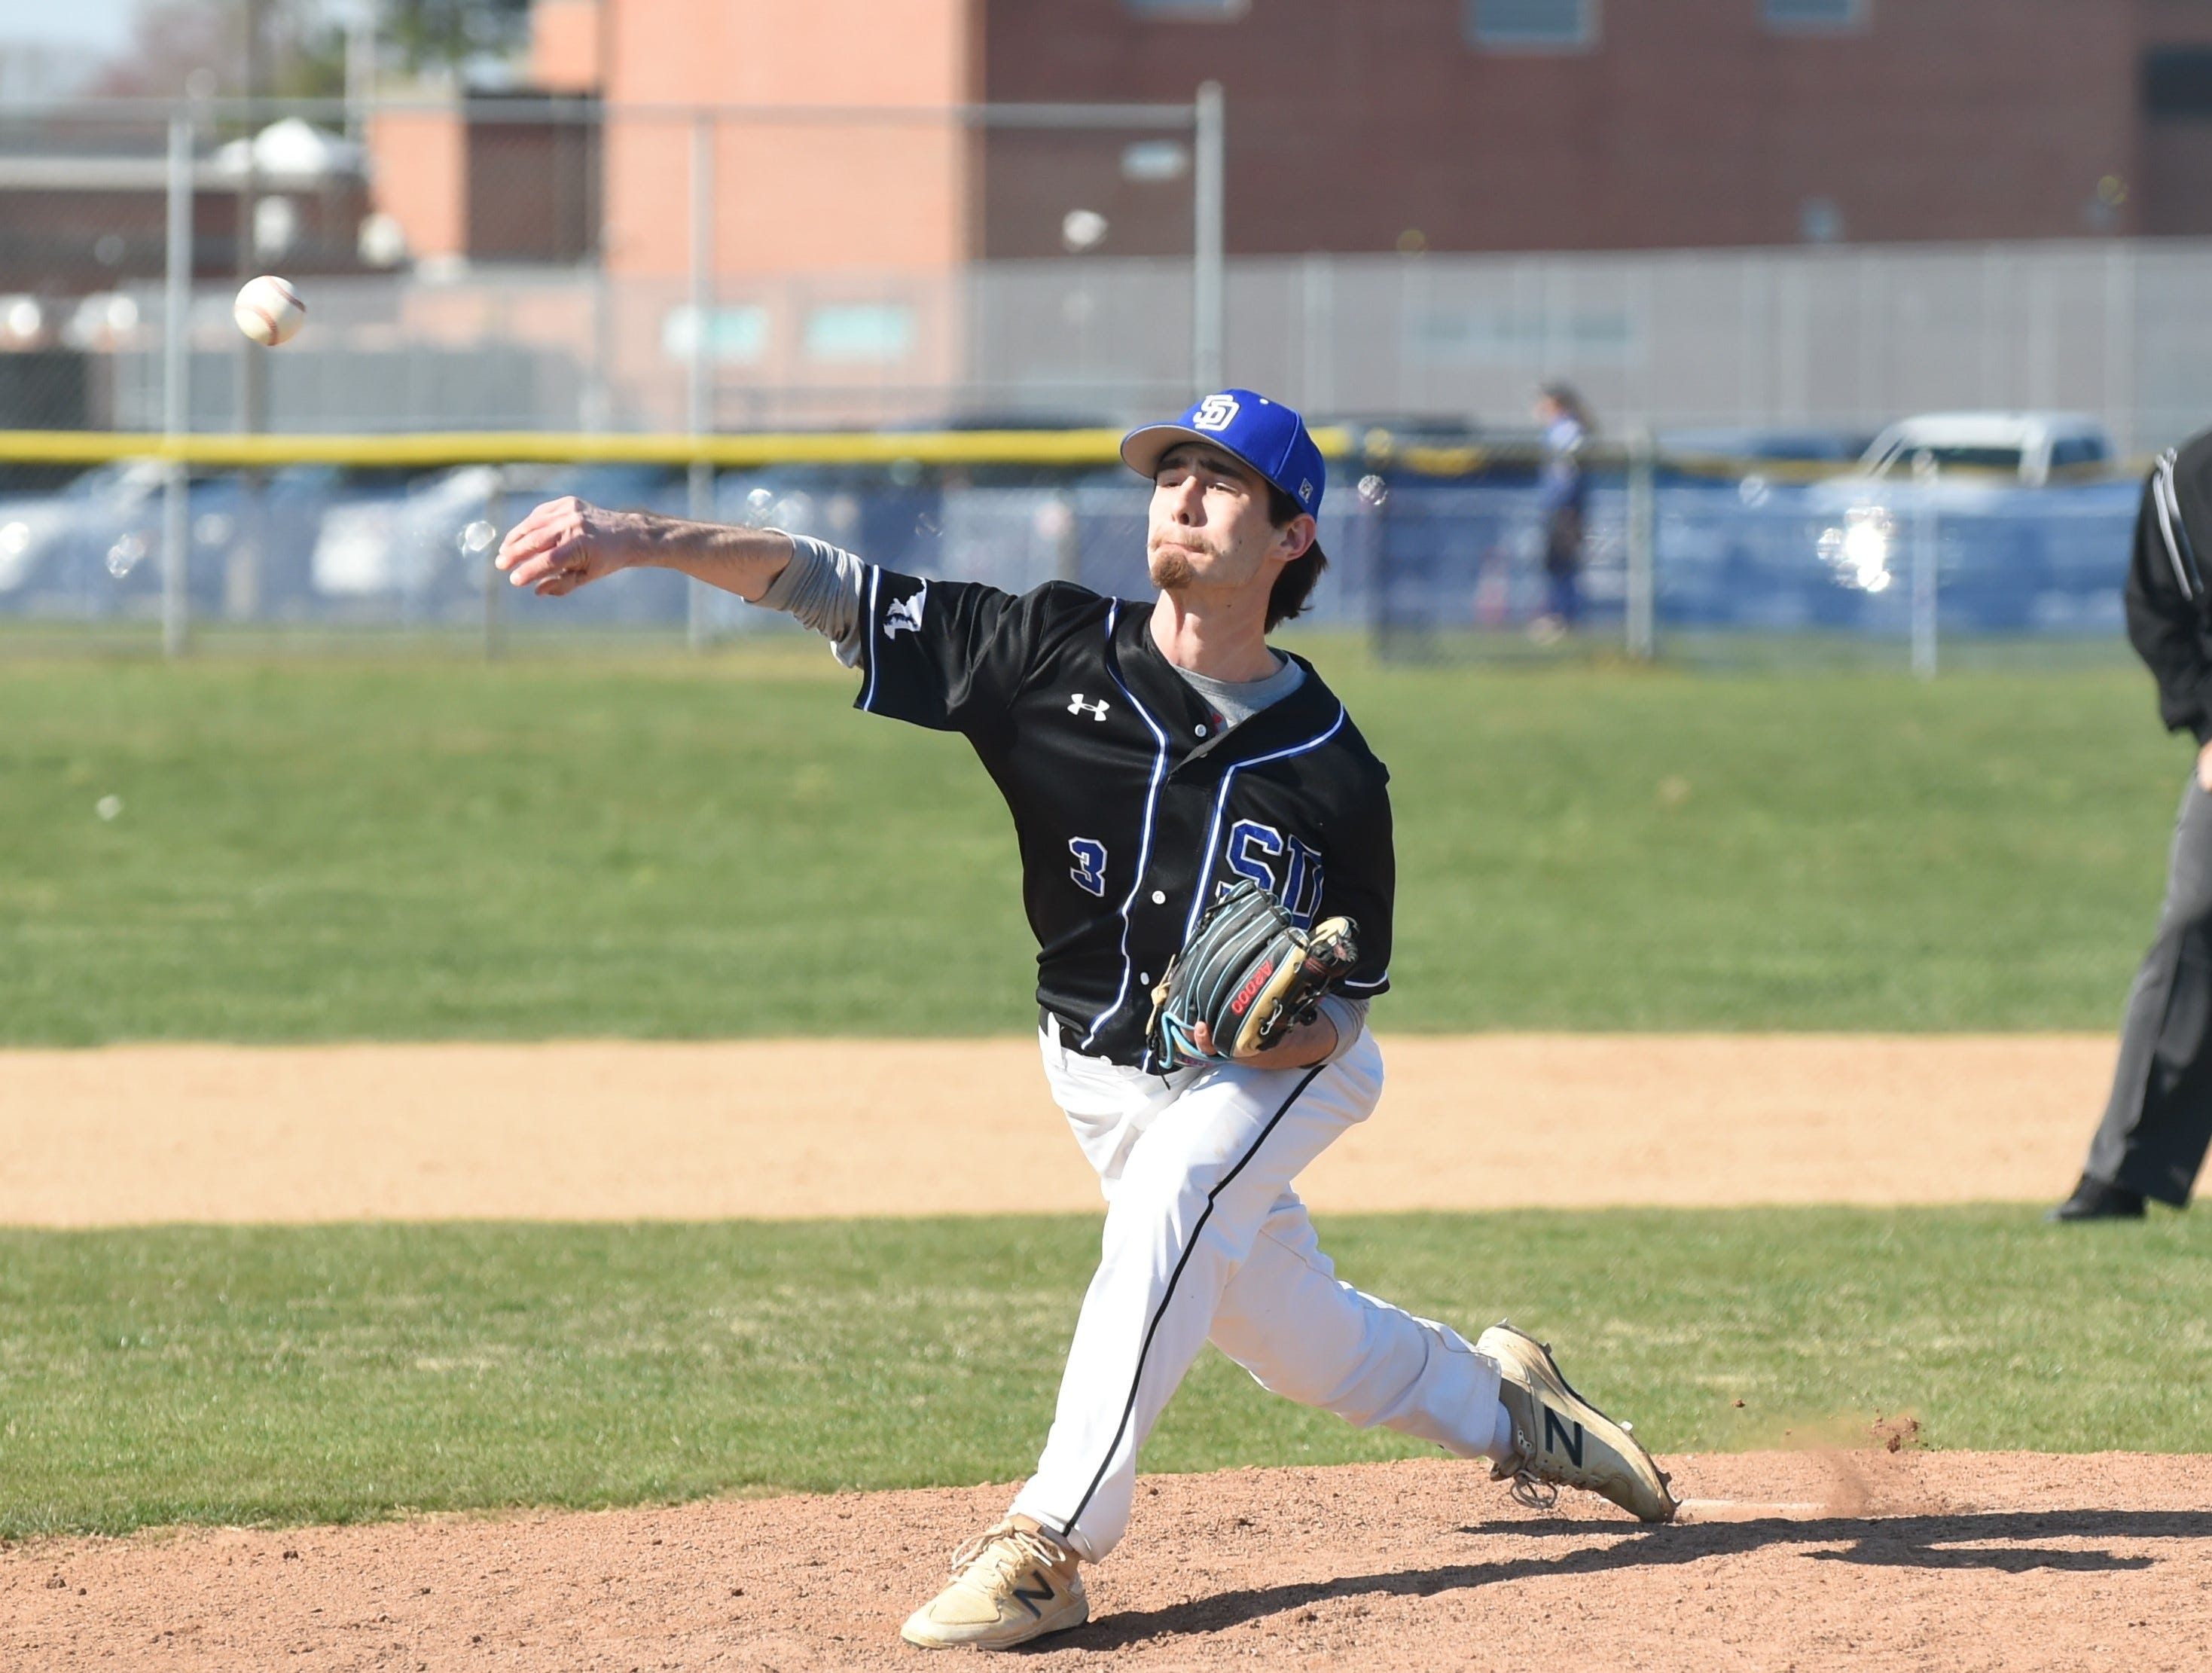 Stephen Decatur's Currance pitches against Parkside on on Wednesday, April 3, 2019.